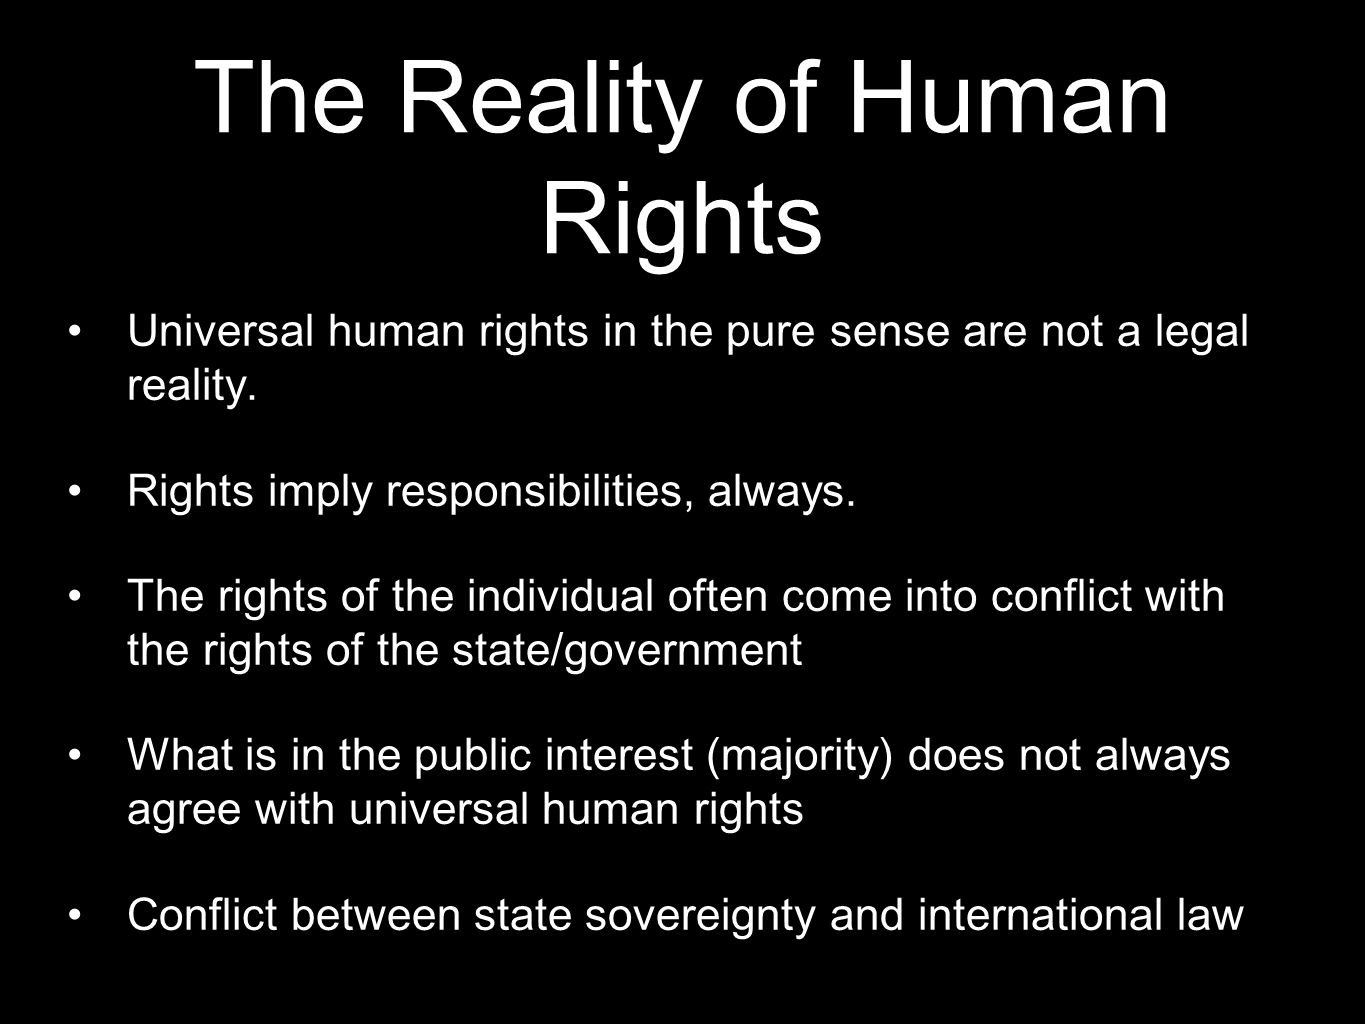 The Reality of Human Rights